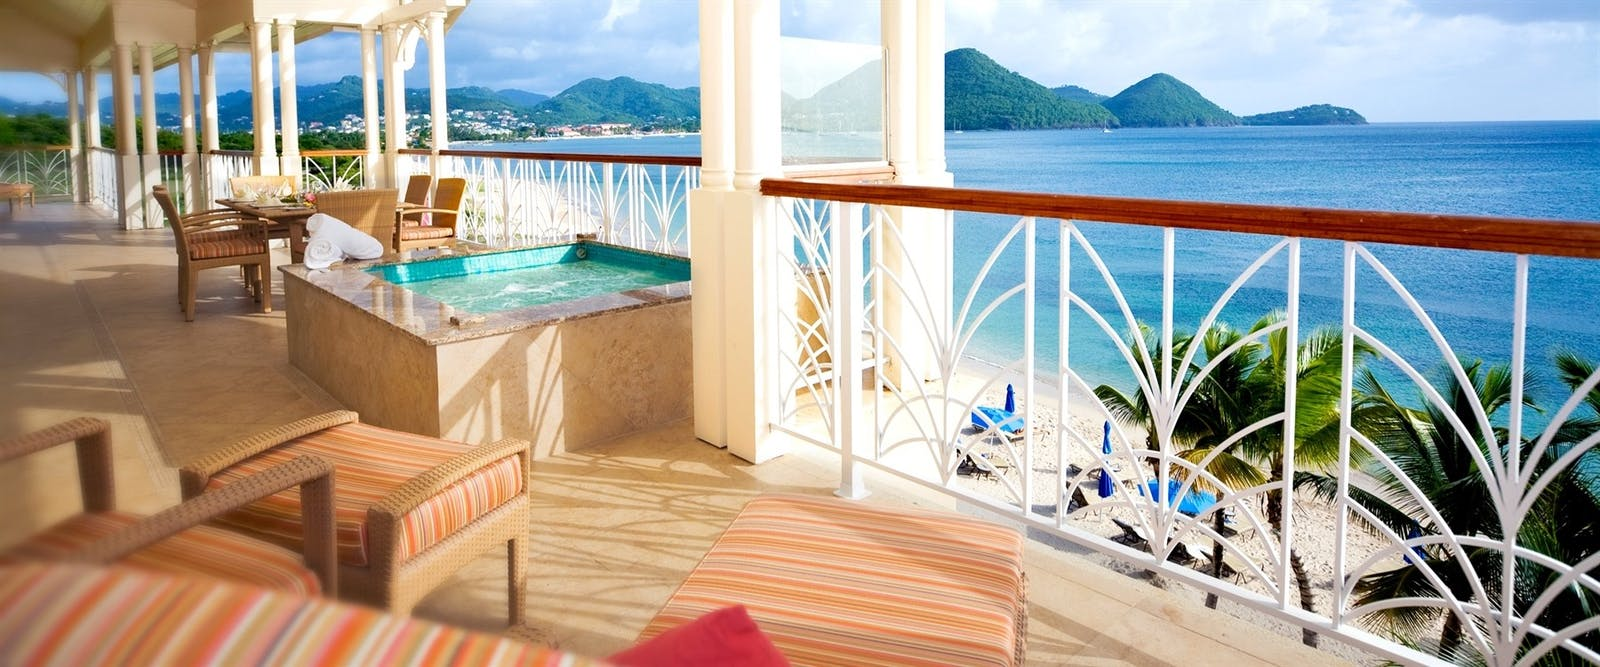 Terrace at The Landings Resort and Spa by Elegant Hotels, St Lucia